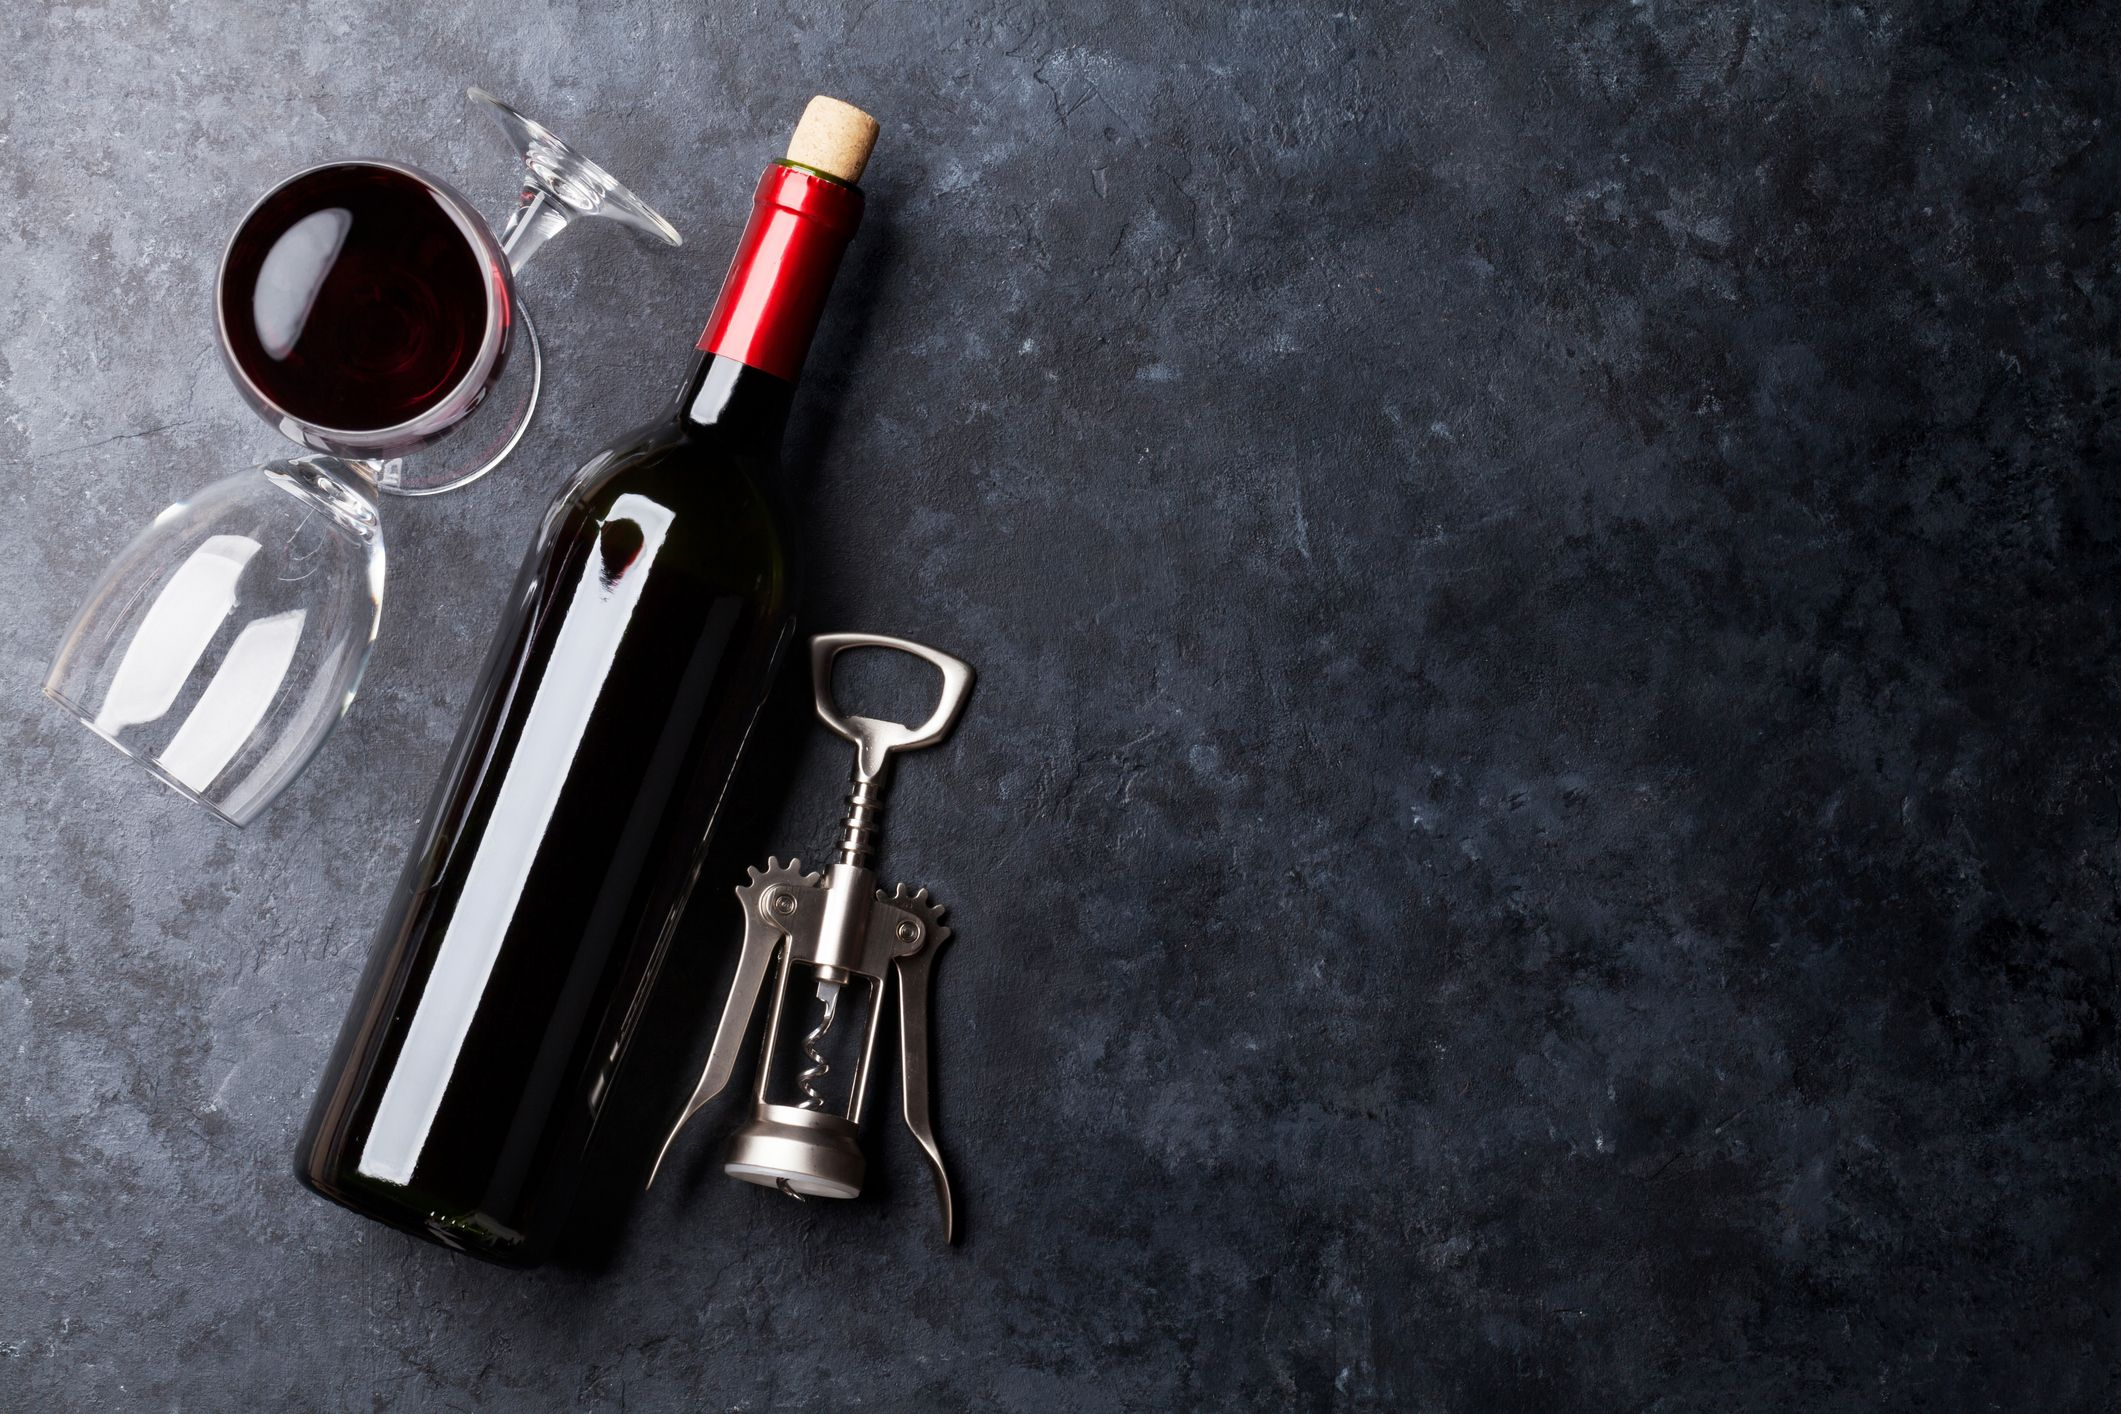 Red wine glasses and bottle on table